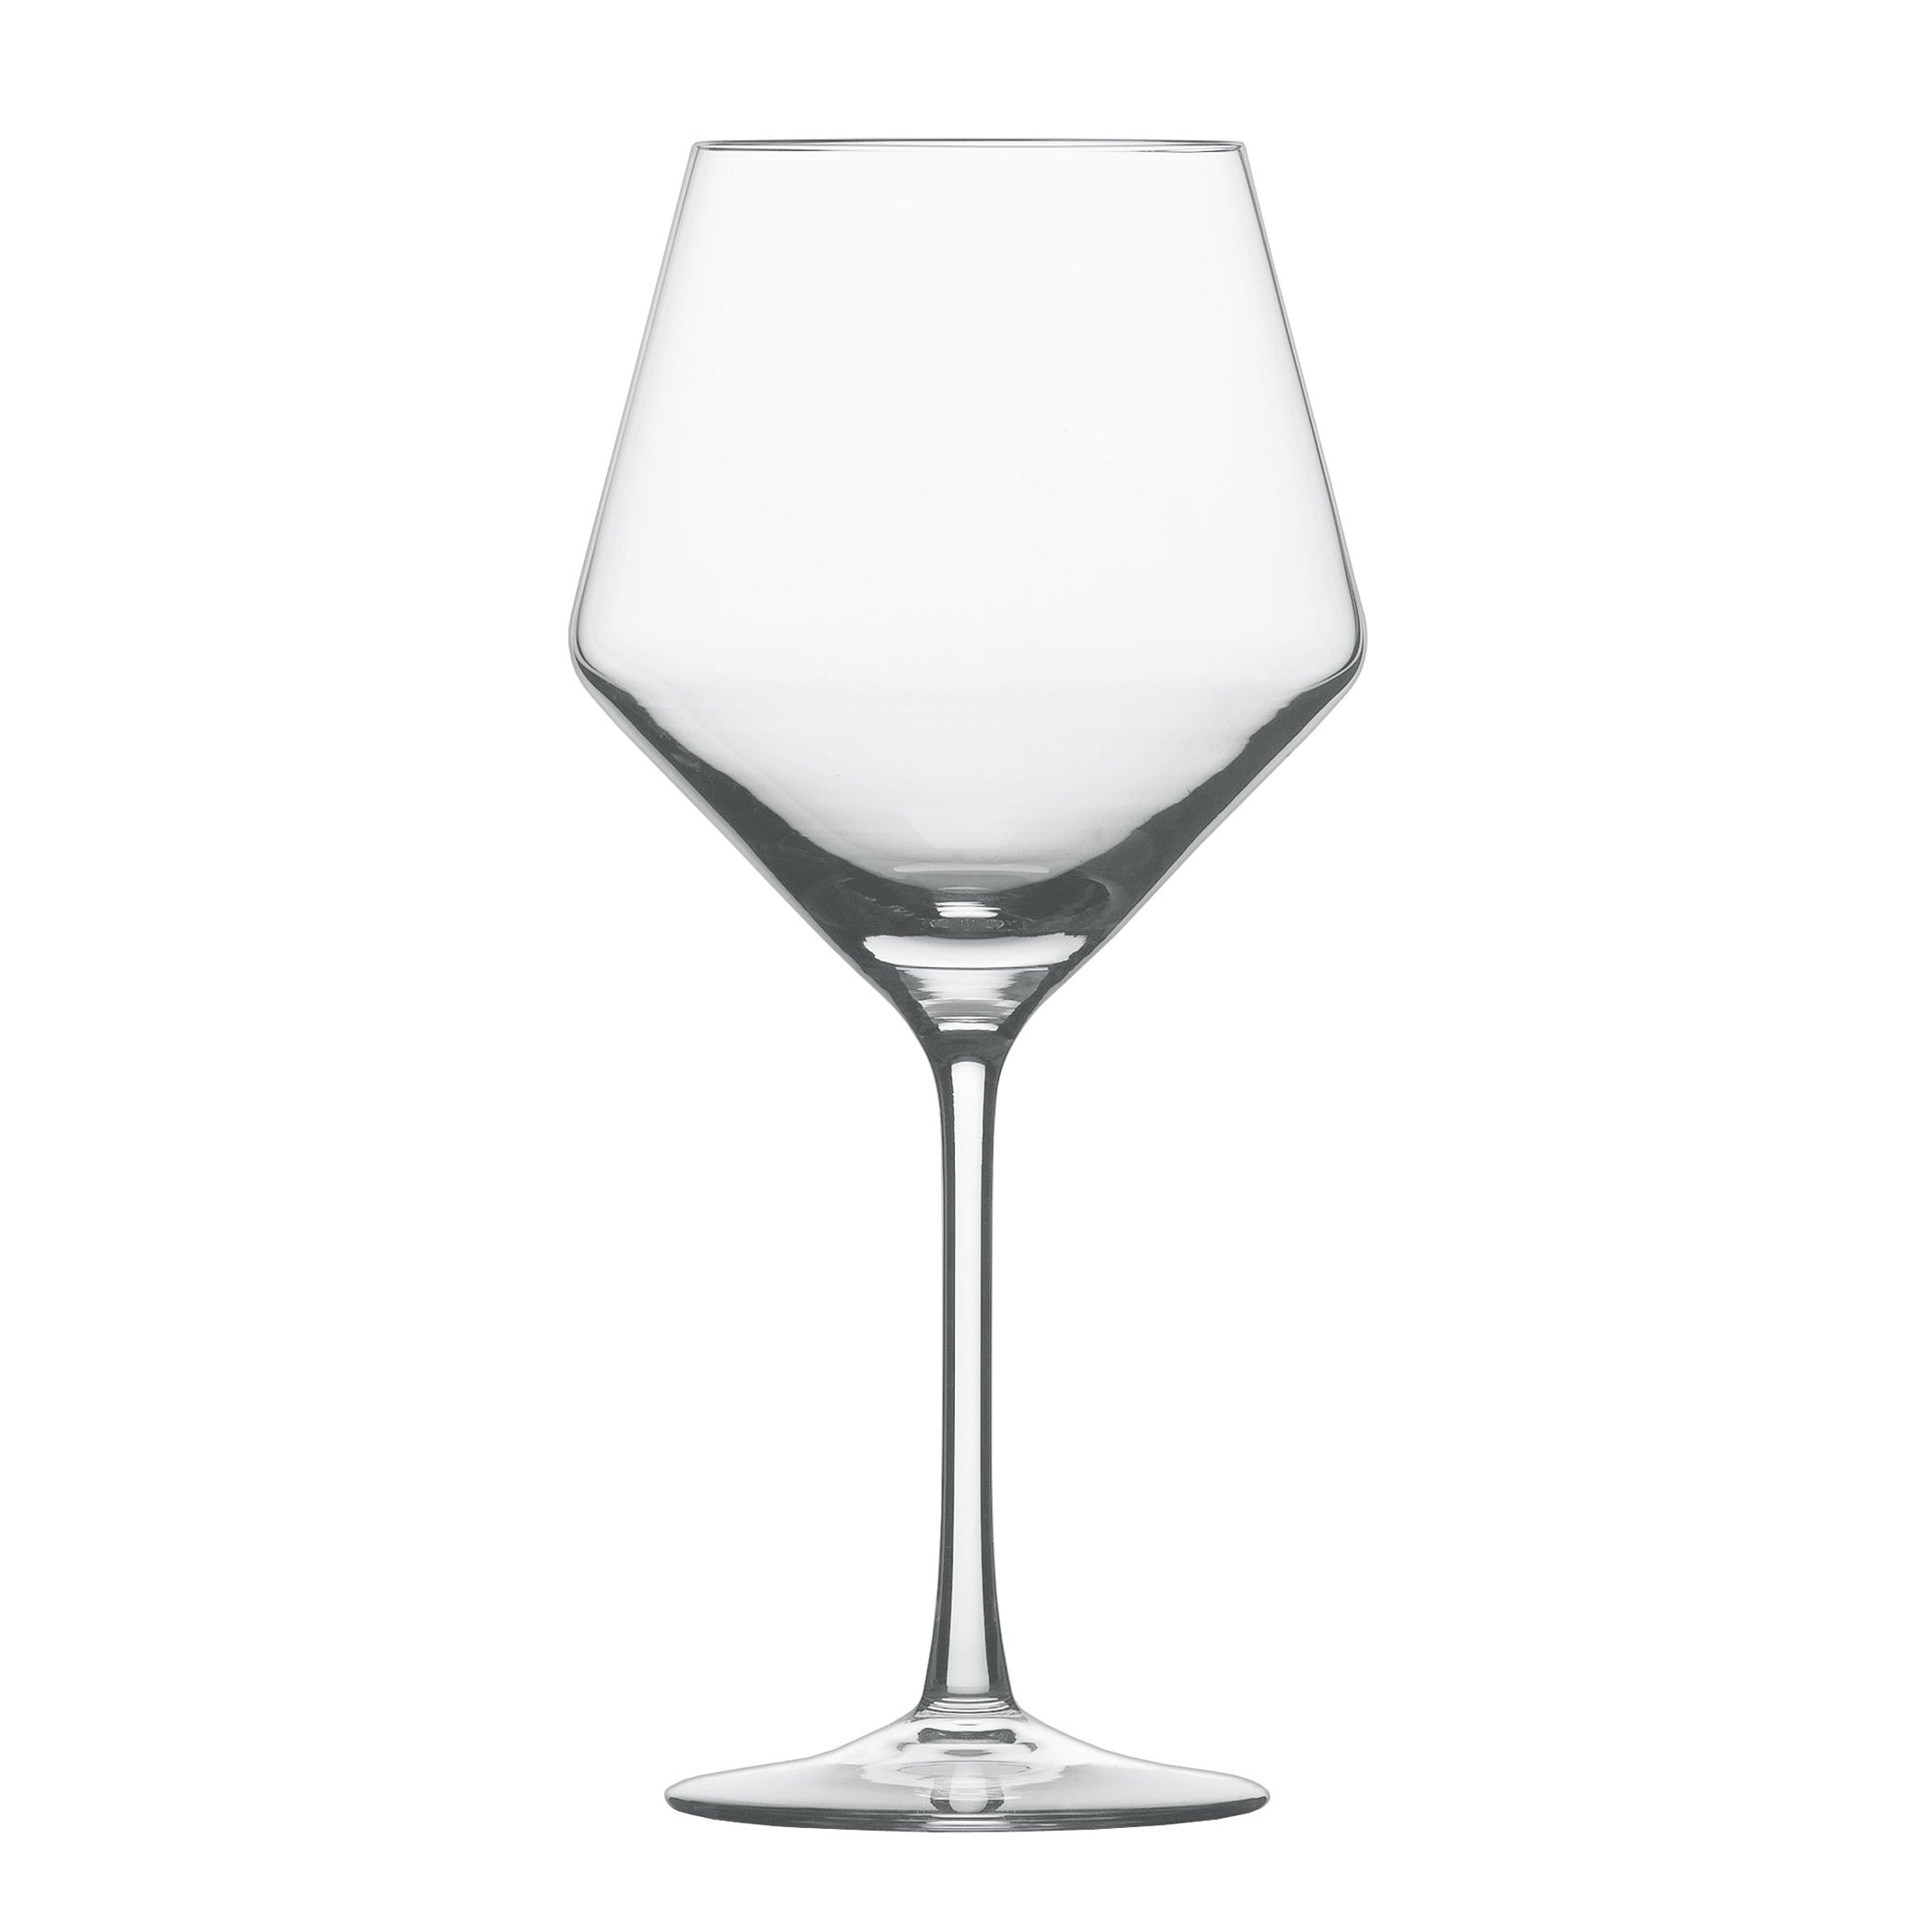 Schott Zwiesel Tritan Crystal Glass Pure Stemware Collection Burgundy Red Wine Glass, 23.4-Ounce, Set of 6 - 26.112421 by Schott Zwiesel